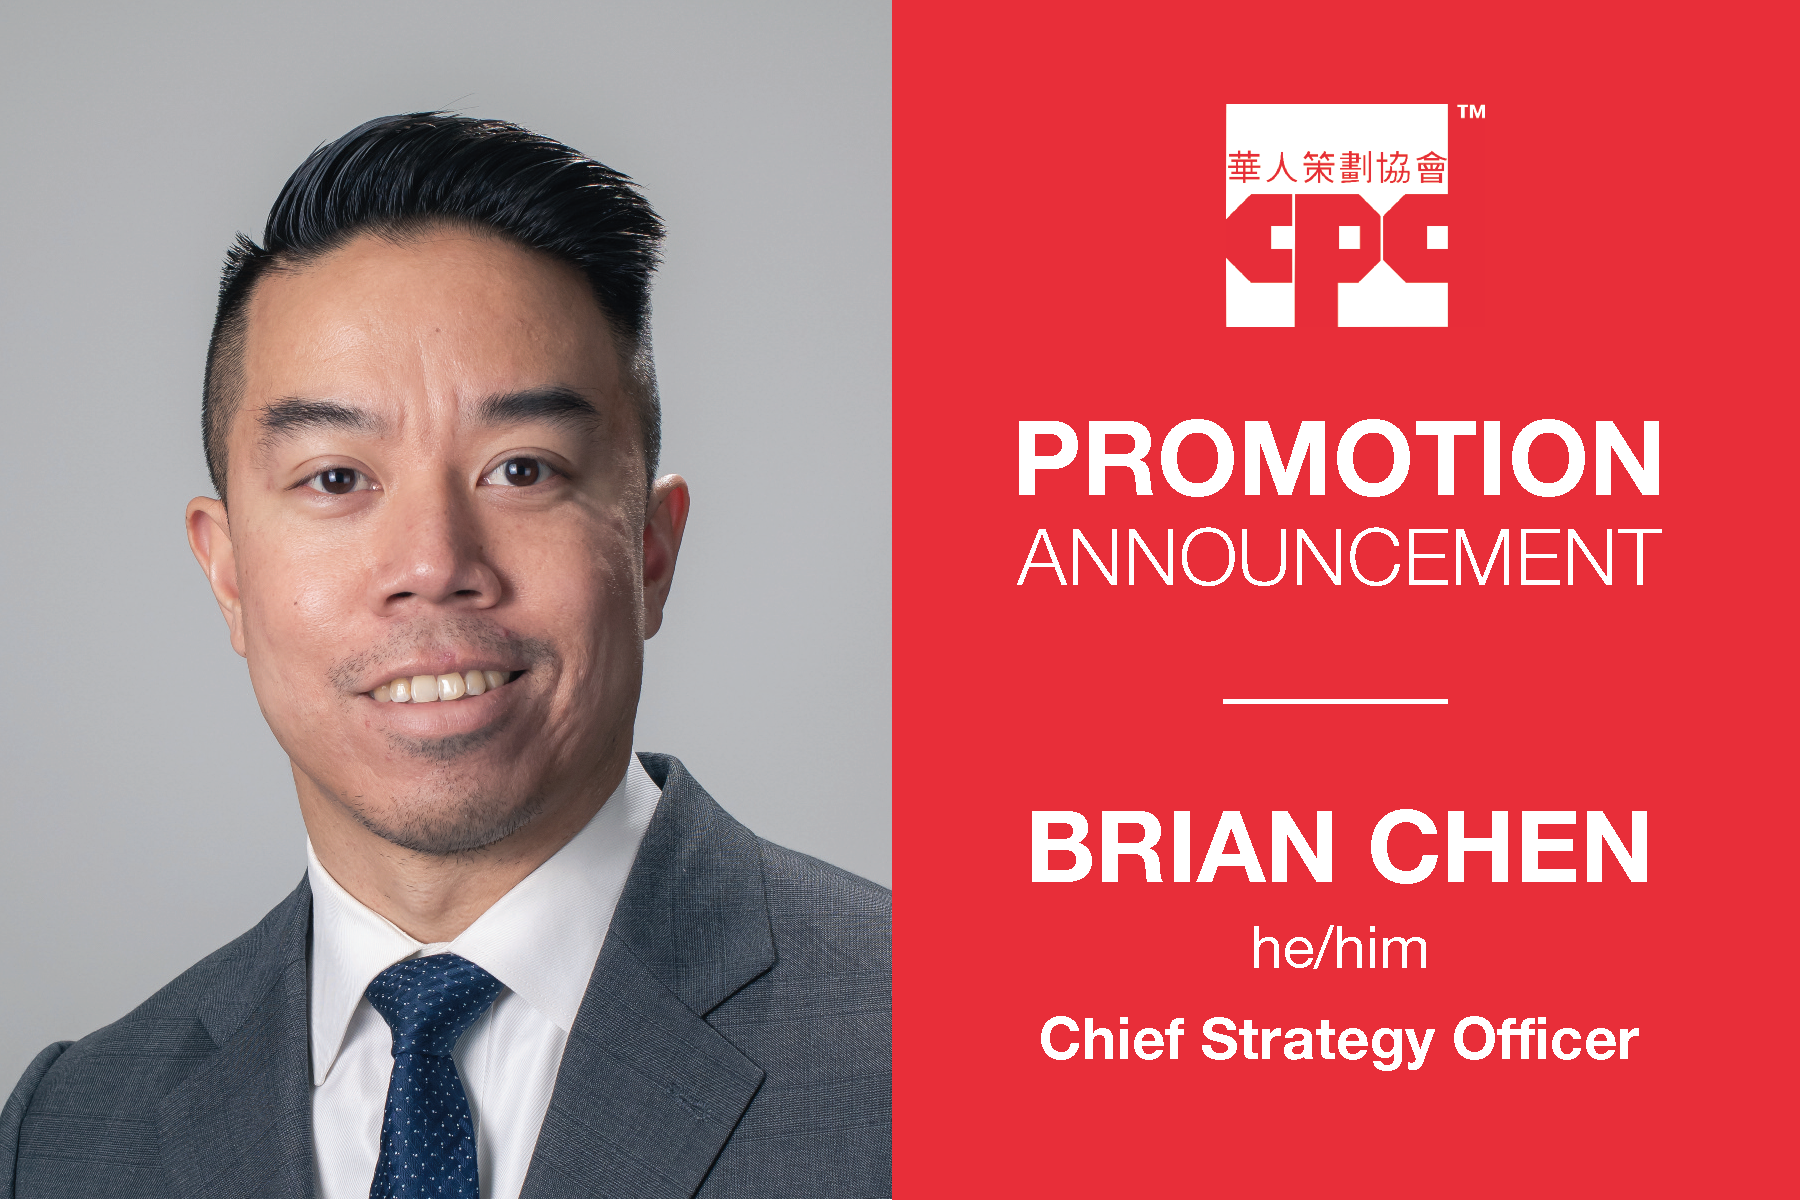 Brian Chen Chief Strategy Officer